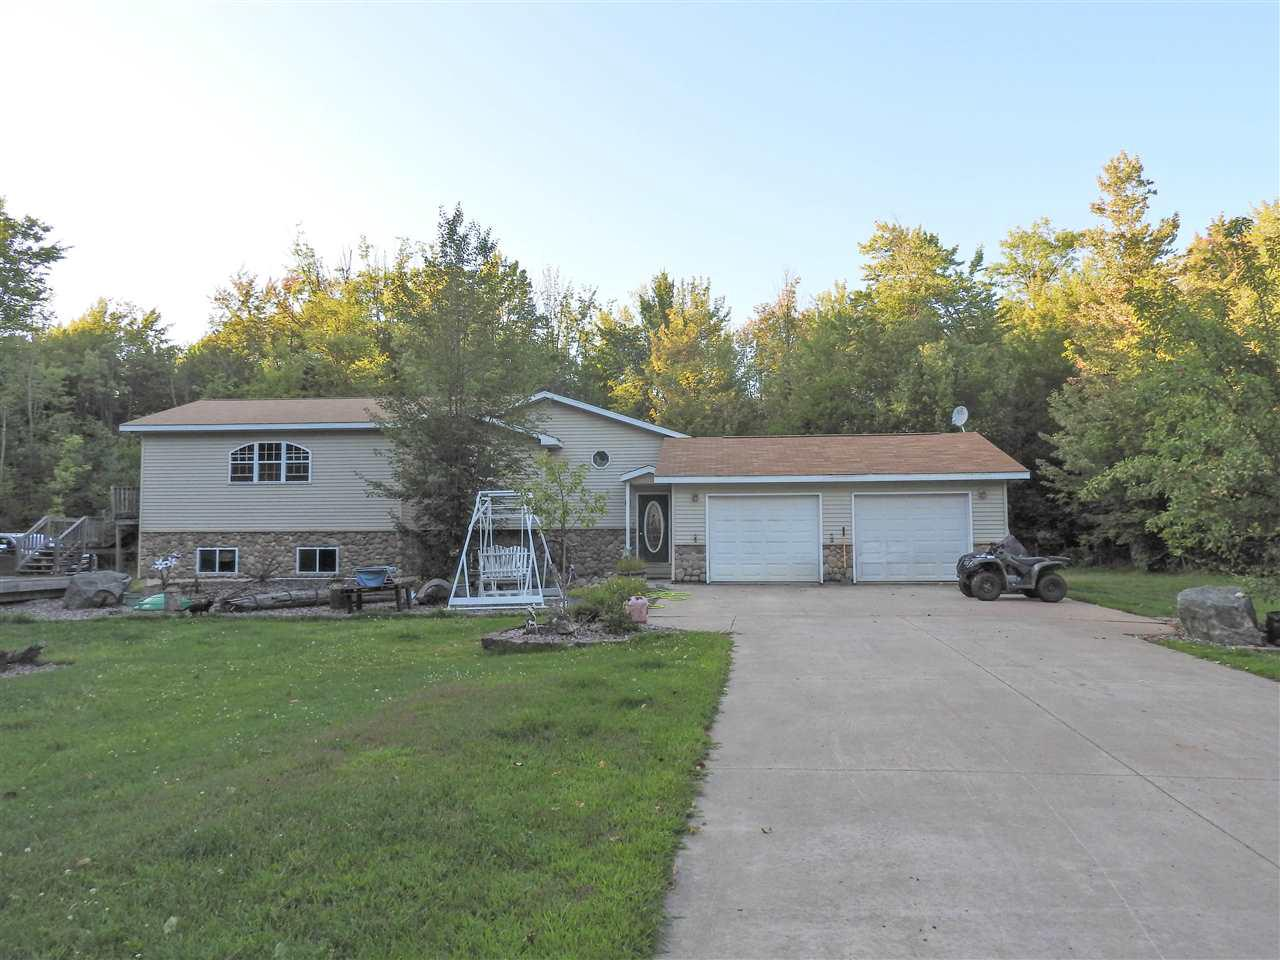 Superbly built 4 bed, 2 bath bi-level, raised ranch home located on 30.52 acres. Accompanied by a 3 acre private pond, boat house/exterior building, logging trails, detached/insulated 4-car garage, attached/heated 2+ car garage, spa/hot tub inside enclosed gazebo/cabana, and tanning bed. Property also hosts apple trees, walnut trees, peach trees, blackberry bushes, raspberry bushes, and blueberry bushes.,Parcel: 010-00470-0001 included in sale. Also included: 2 chest freezers, 2 refrigerators, tractor (2012 Bobcat 338) w/bush hog, rototiller, box scraper, ATV/4-wheeler (2018 Honda Recon), and lawn mower.